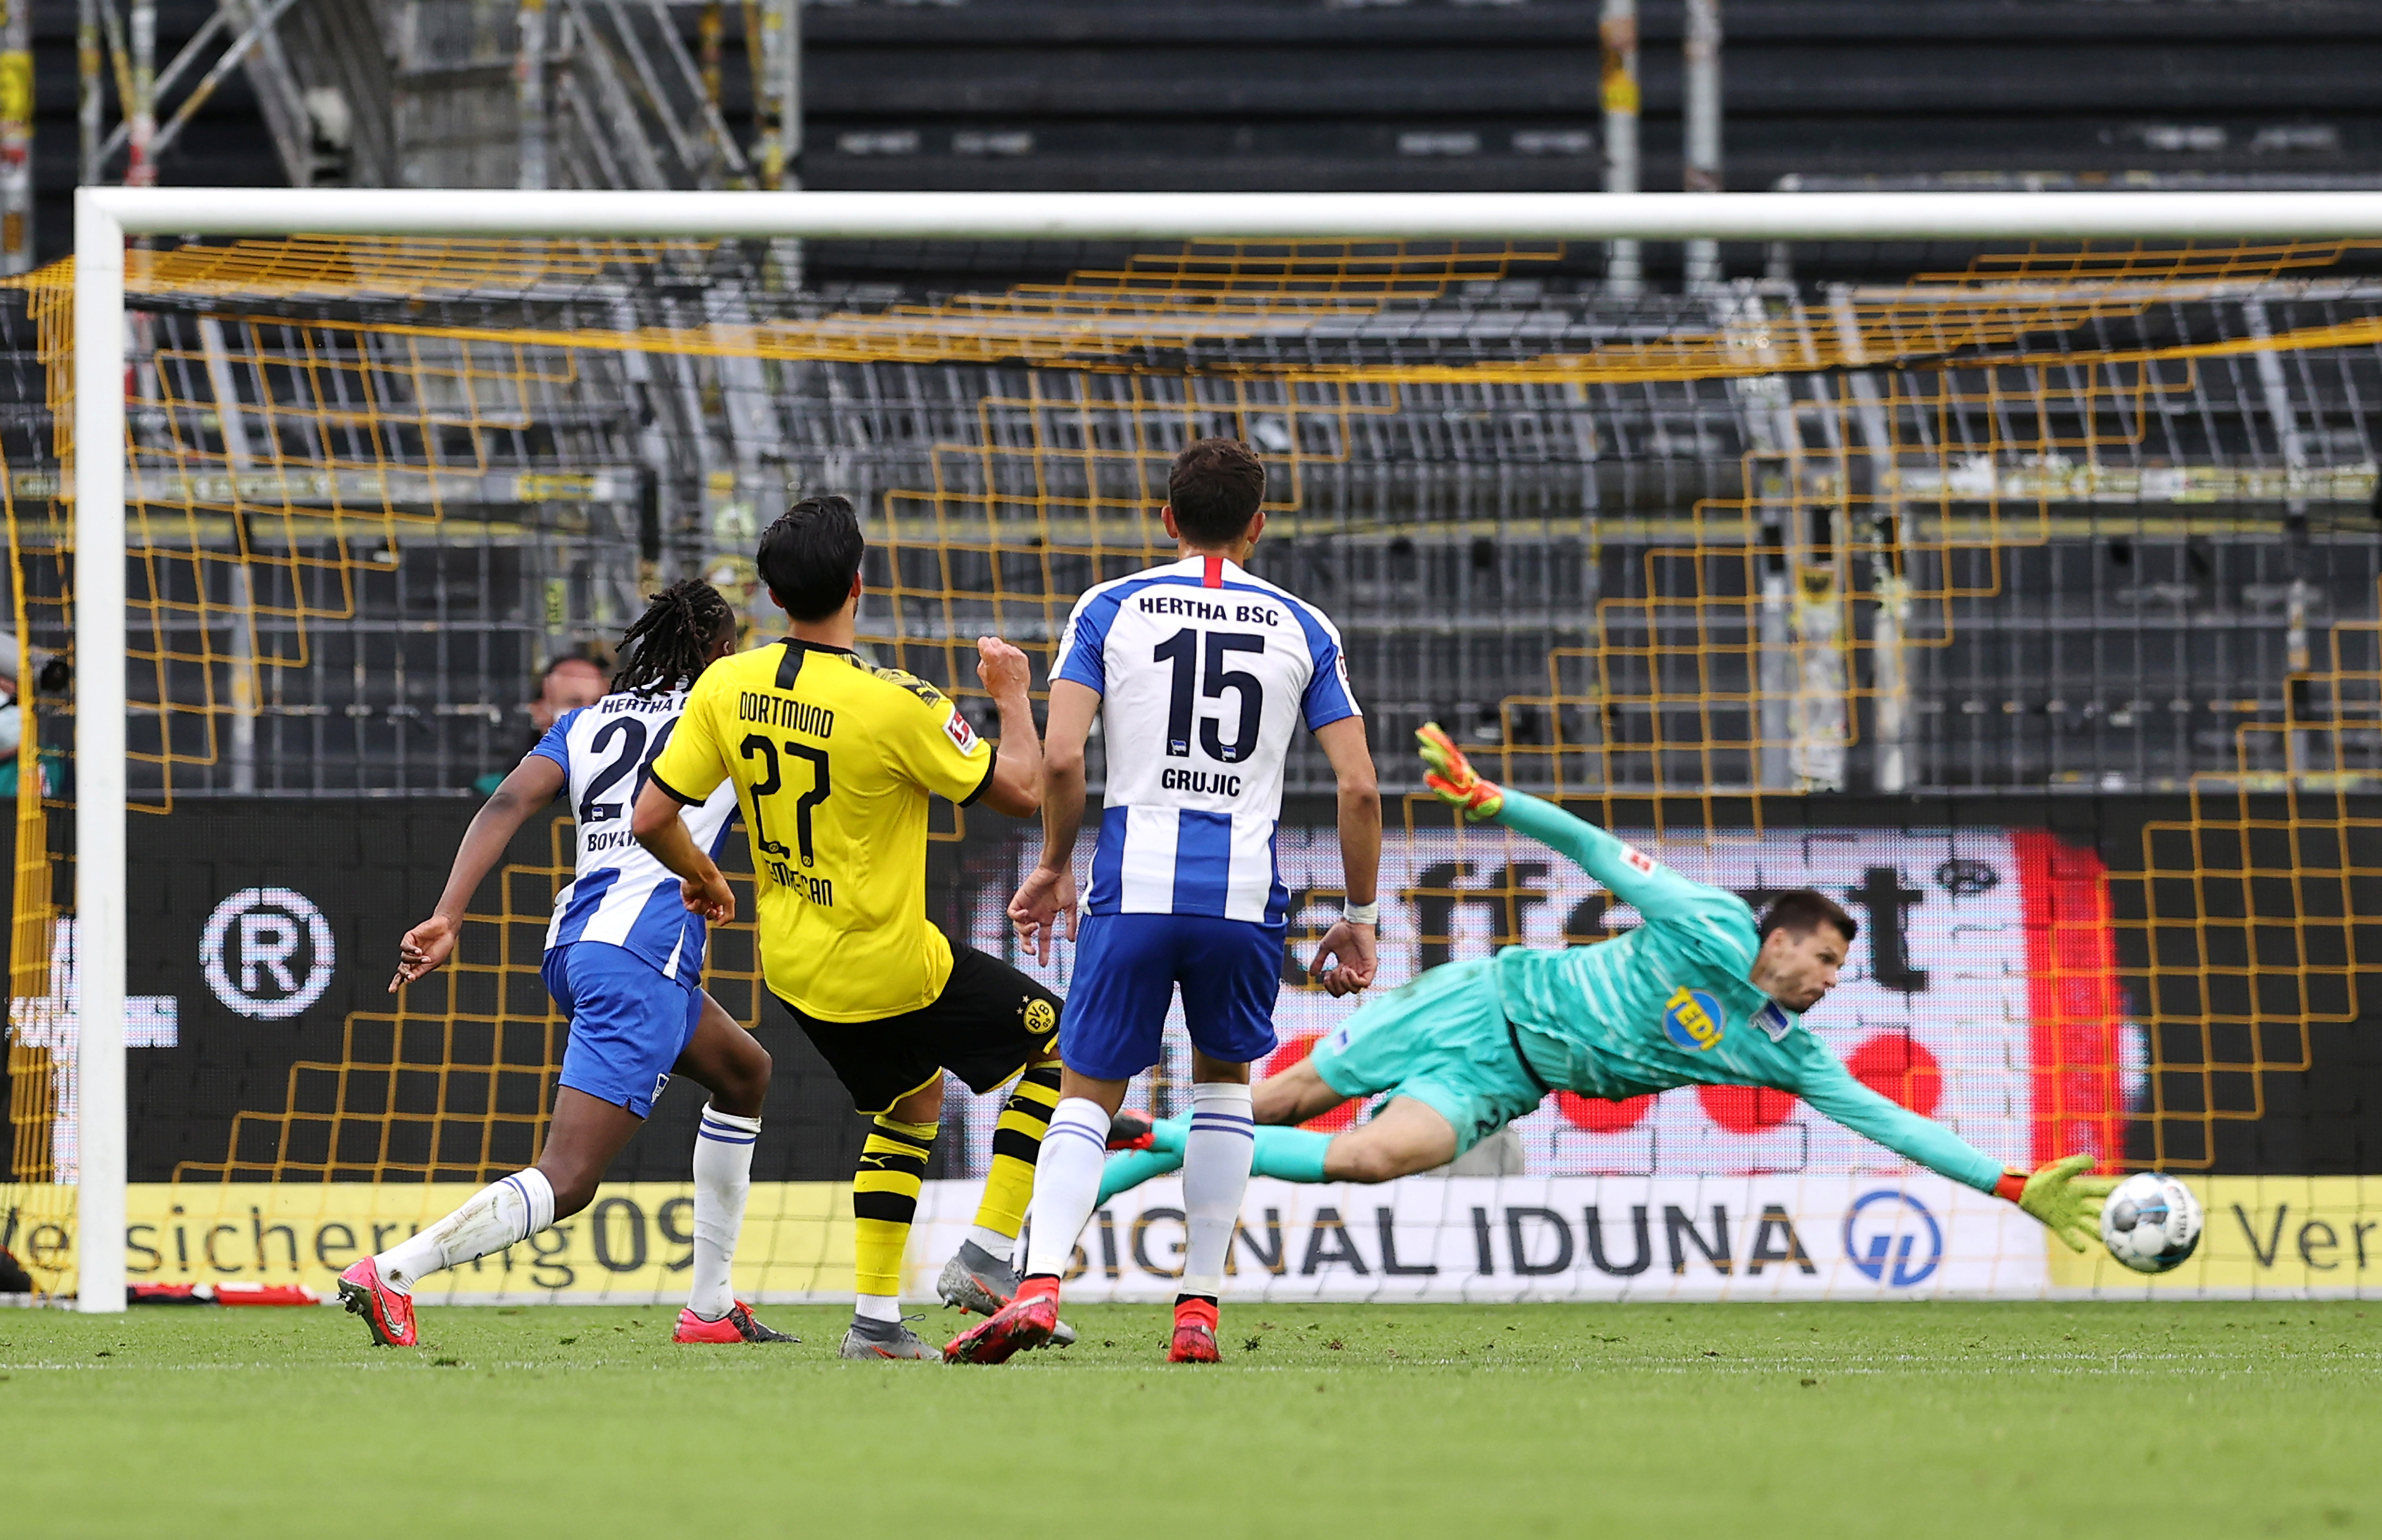 Borussia Dortmund's Emre Can scores their first goal, as play resumes behind closed doors following the outbreak of the coronavirus disease (COVID-19) during the  Bundesliga match between Borussia Dortmund and Hertha BSC, at Signal Iduna Park, in Dortmund, Germany, on June 6, 2020. Photo: Lars Baron/Pool via Reuters